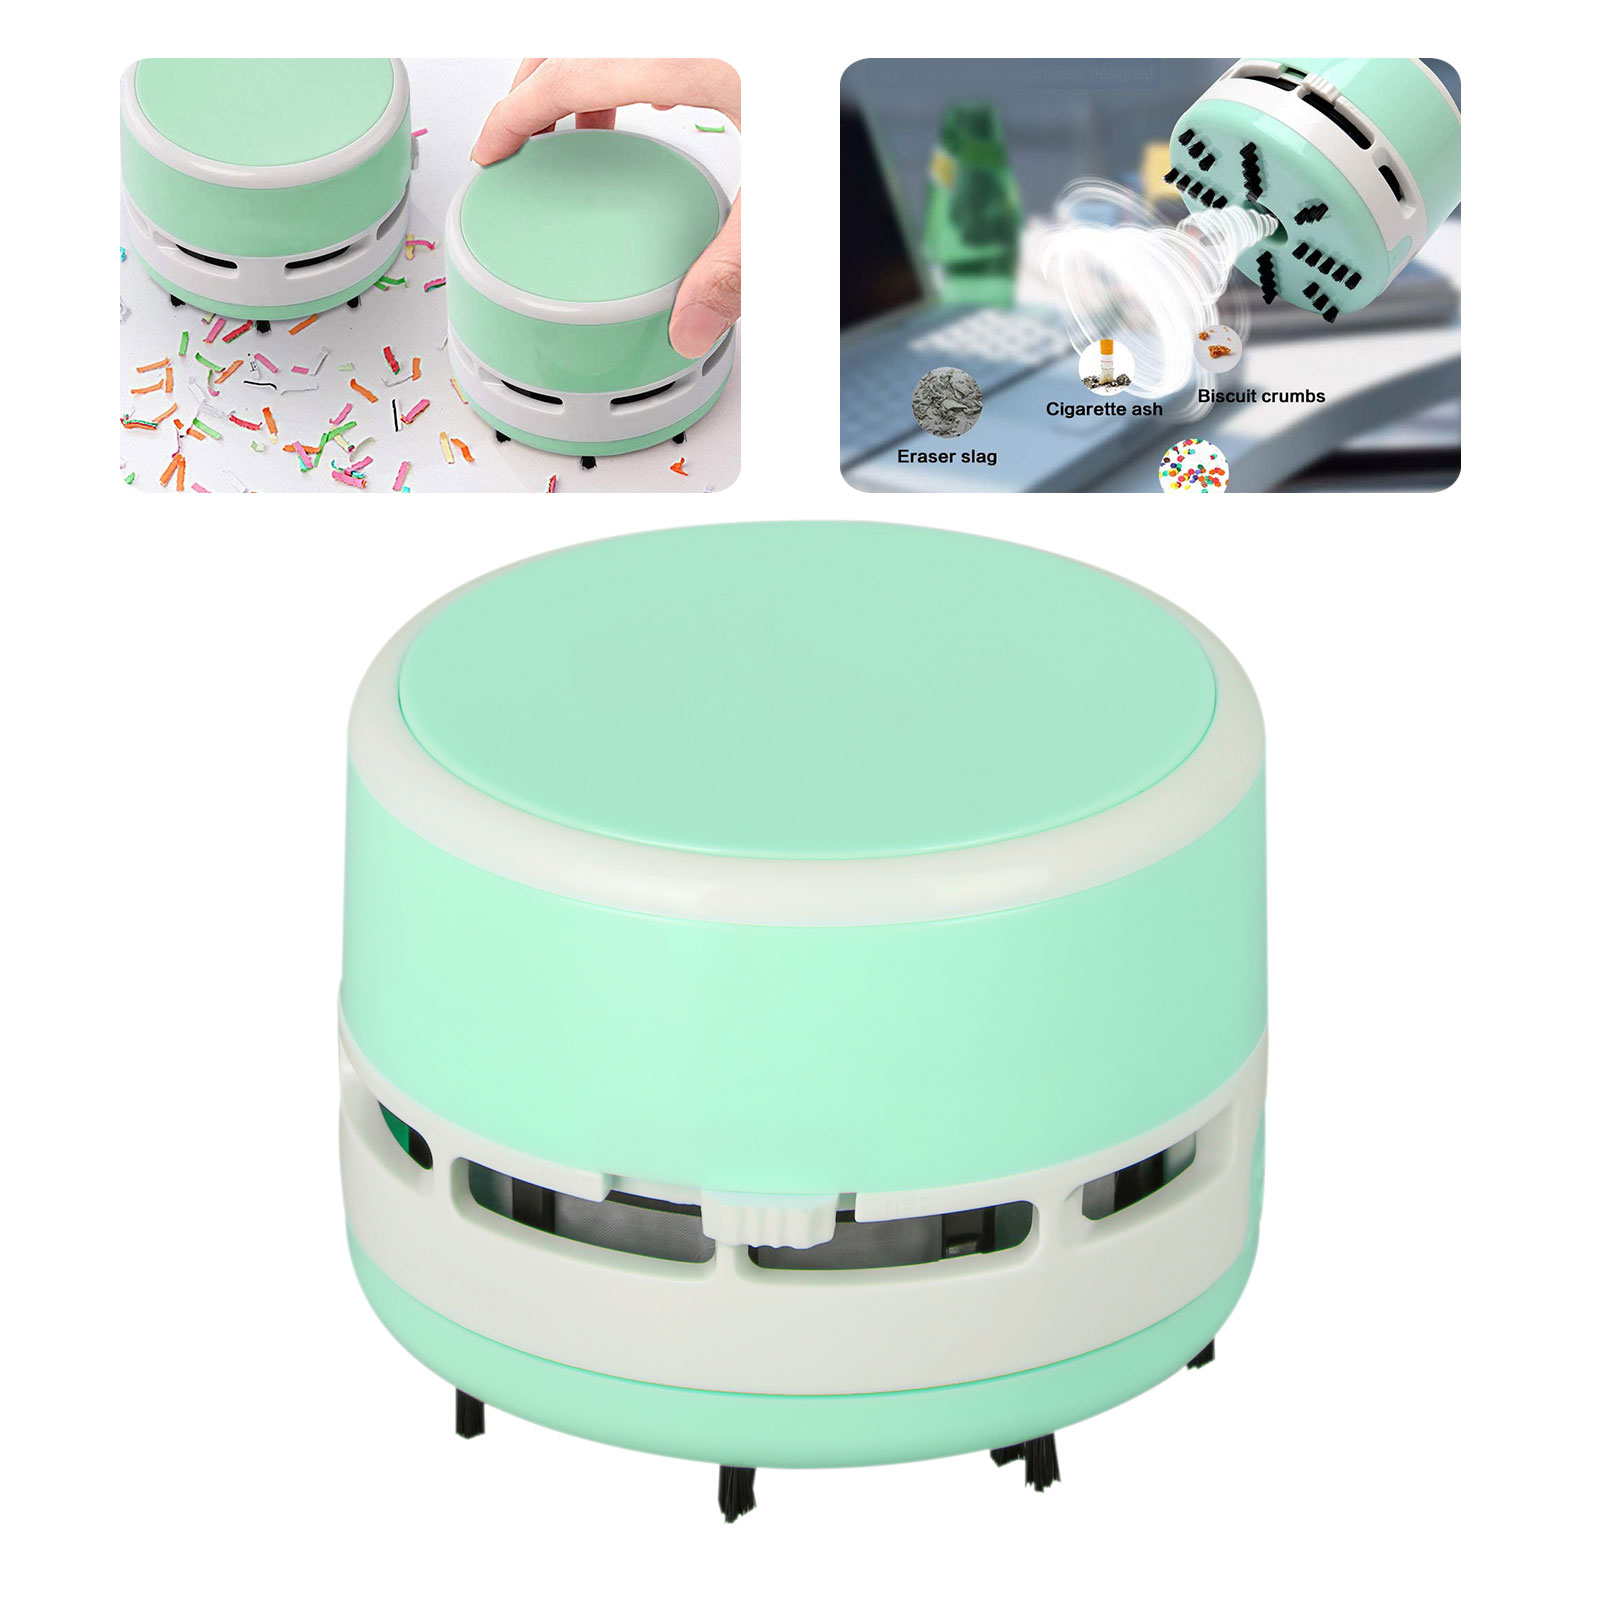 Superbe Mini Vacuum Cleaner Electric Dust Collector For Car Desktop Office Home  Table